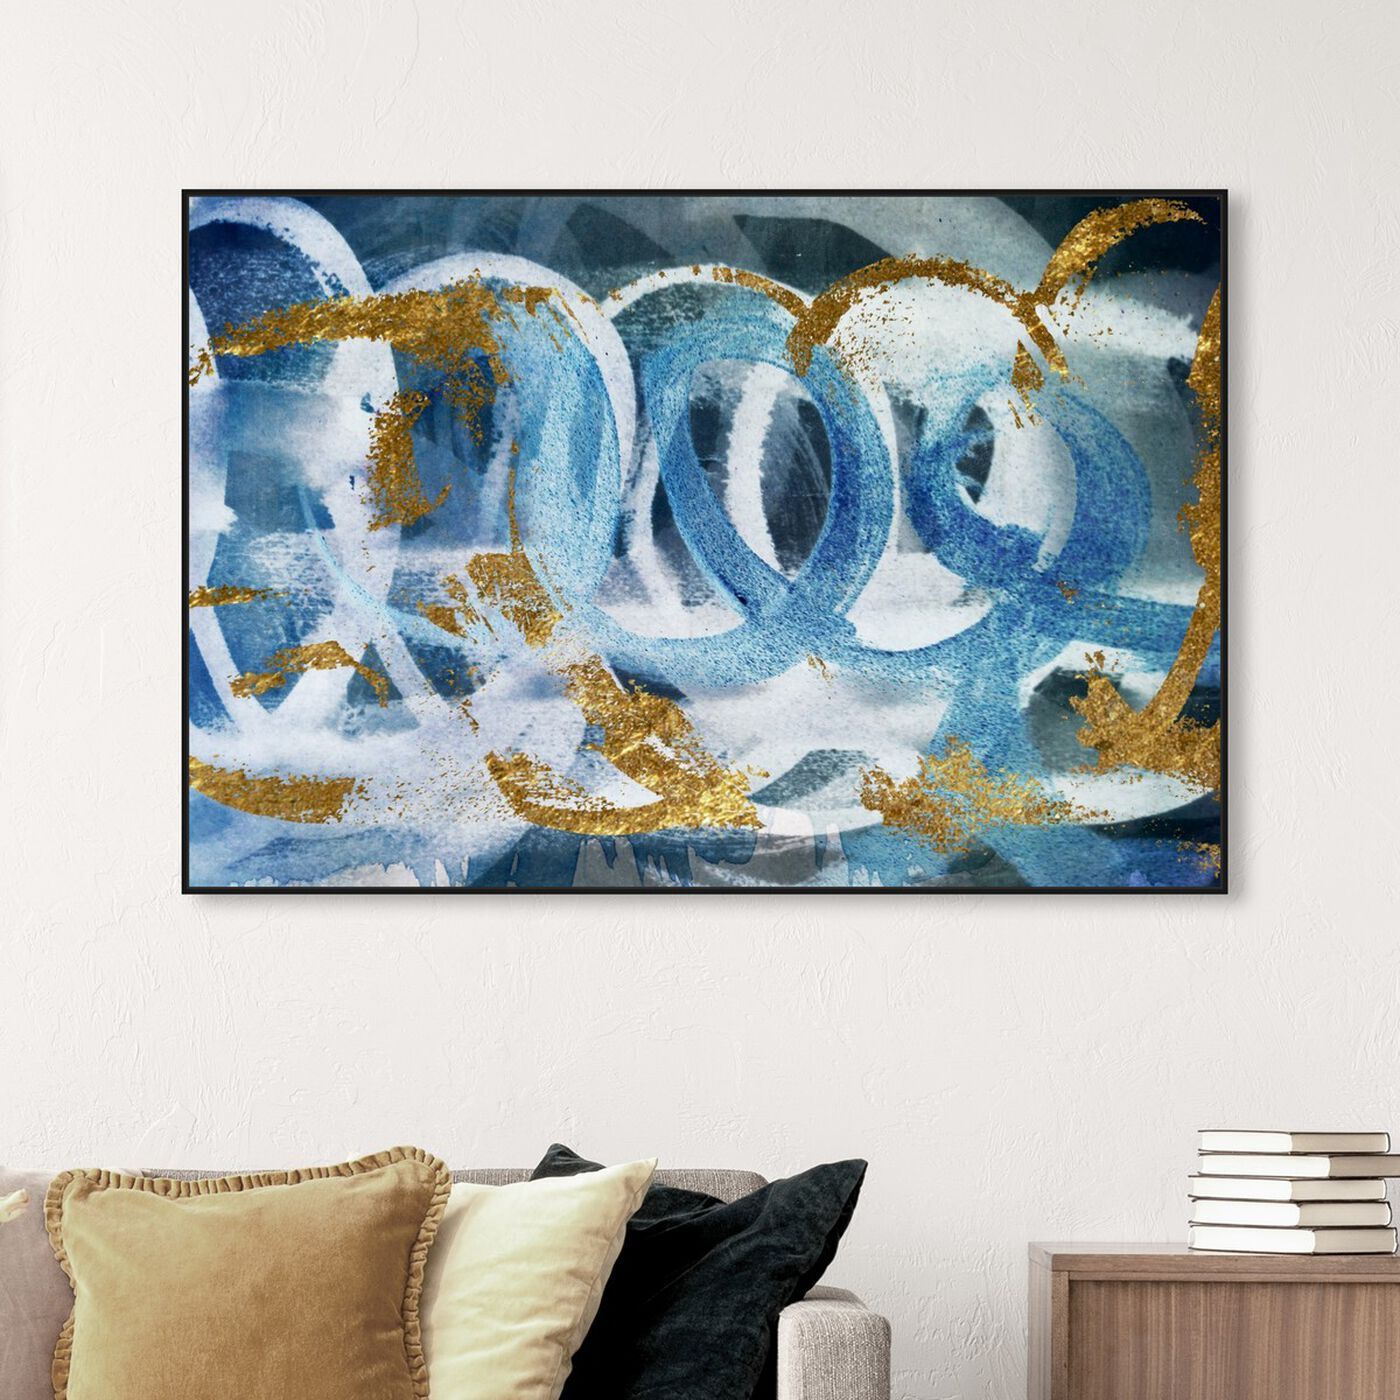 Hanging view of Scriptica GOLD and BLUE featuring abstract and paint art.